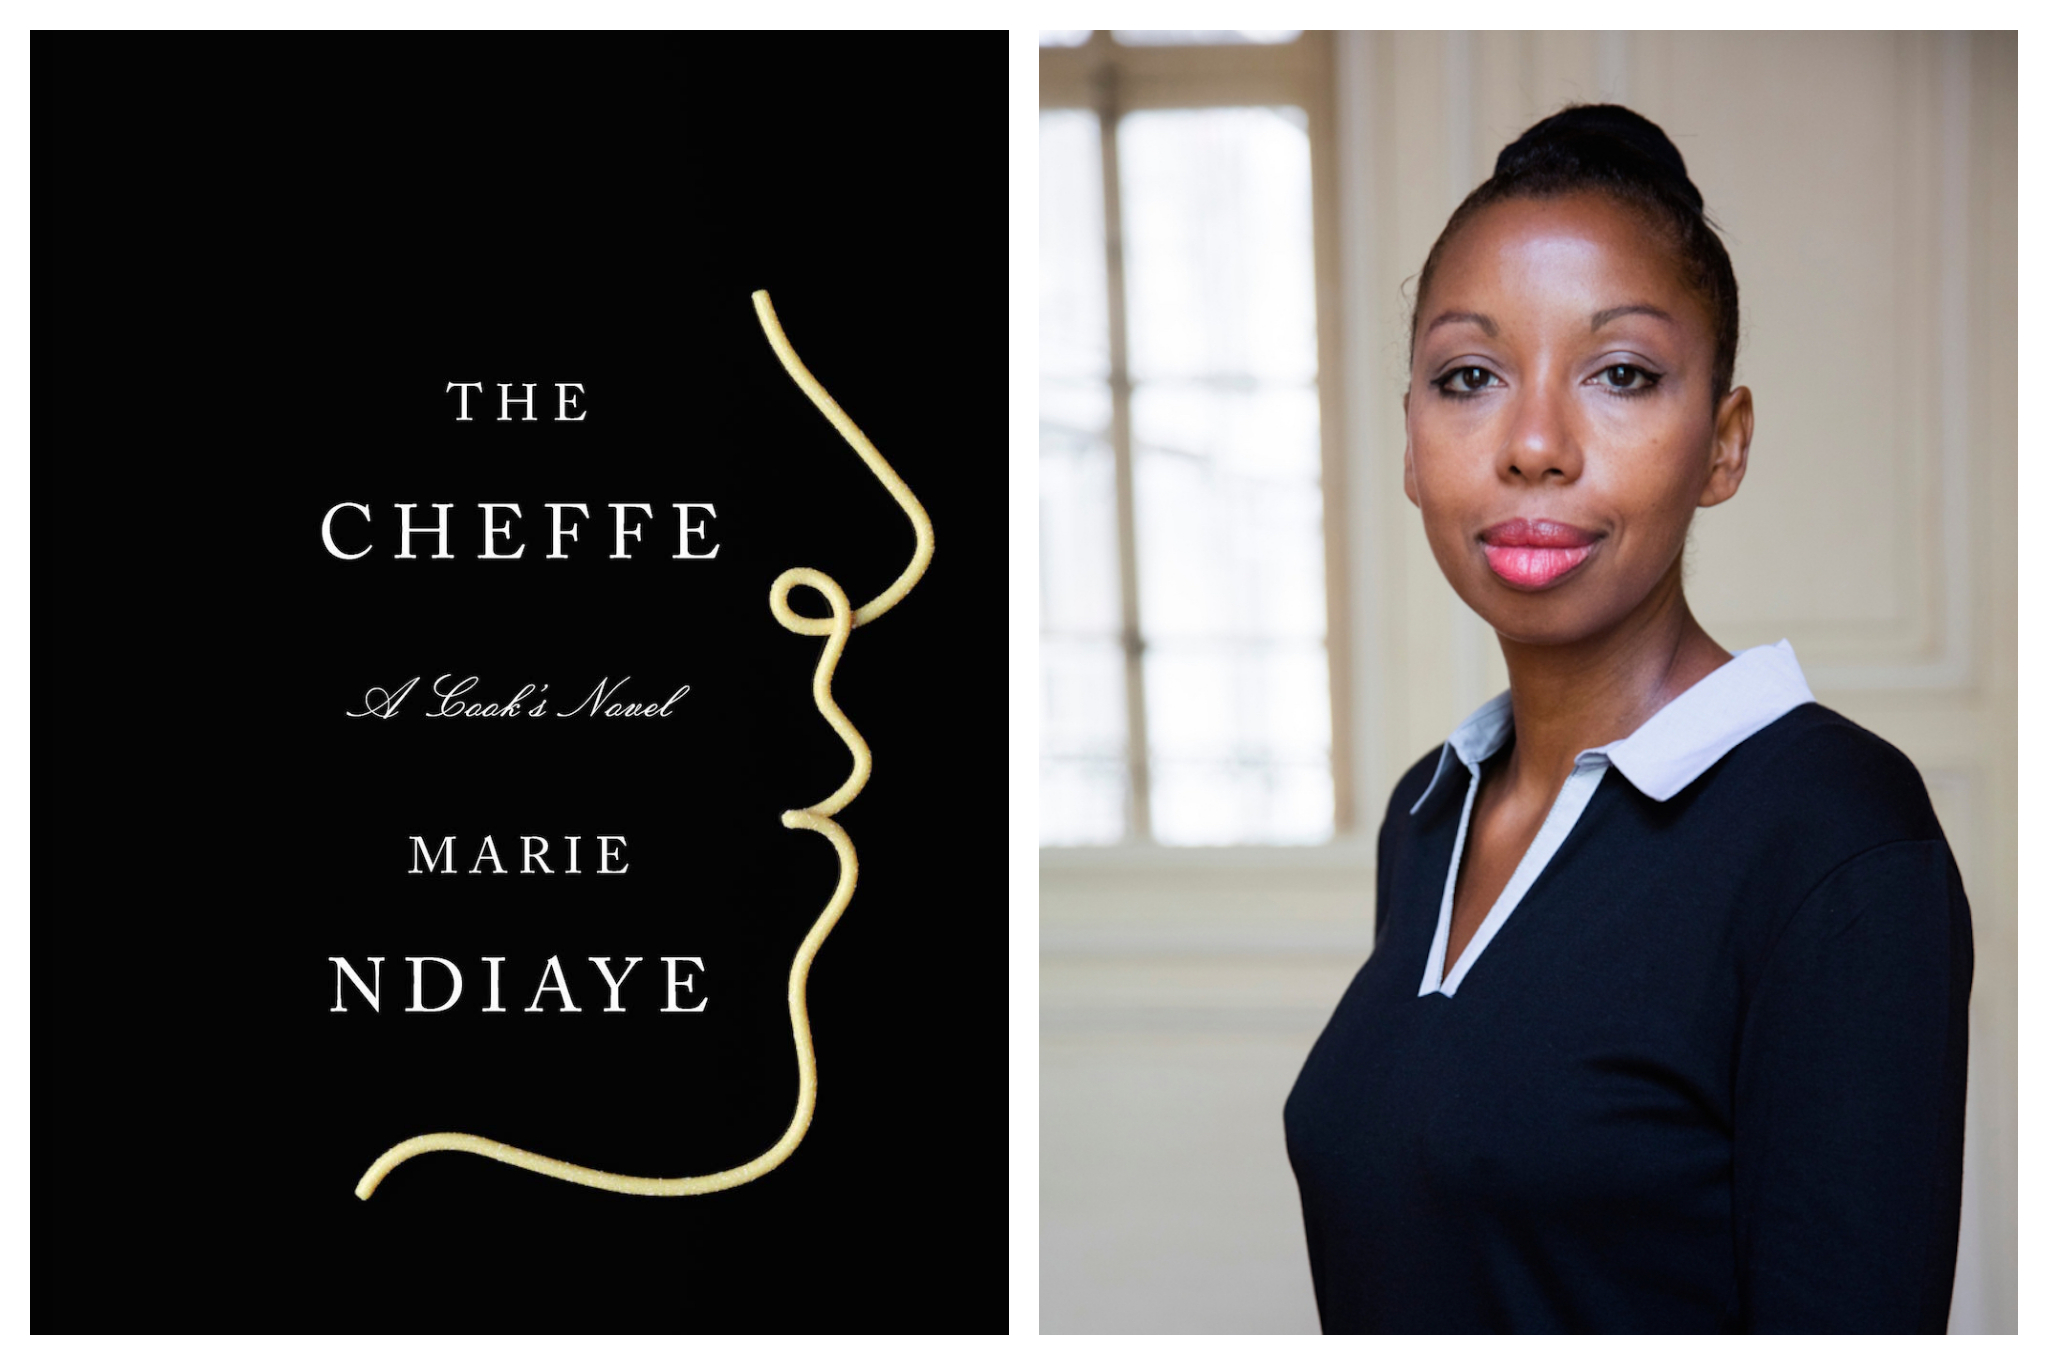 """Left: The cover of Marie NDiaye's book """"The Cheffe,"""" which is black, with the outline of the profile of a face in a light yellow color, Right: A portrait of Marie NDiaye, wearing a long sleeved black shirt with a white collar, as she looks into the camera"""